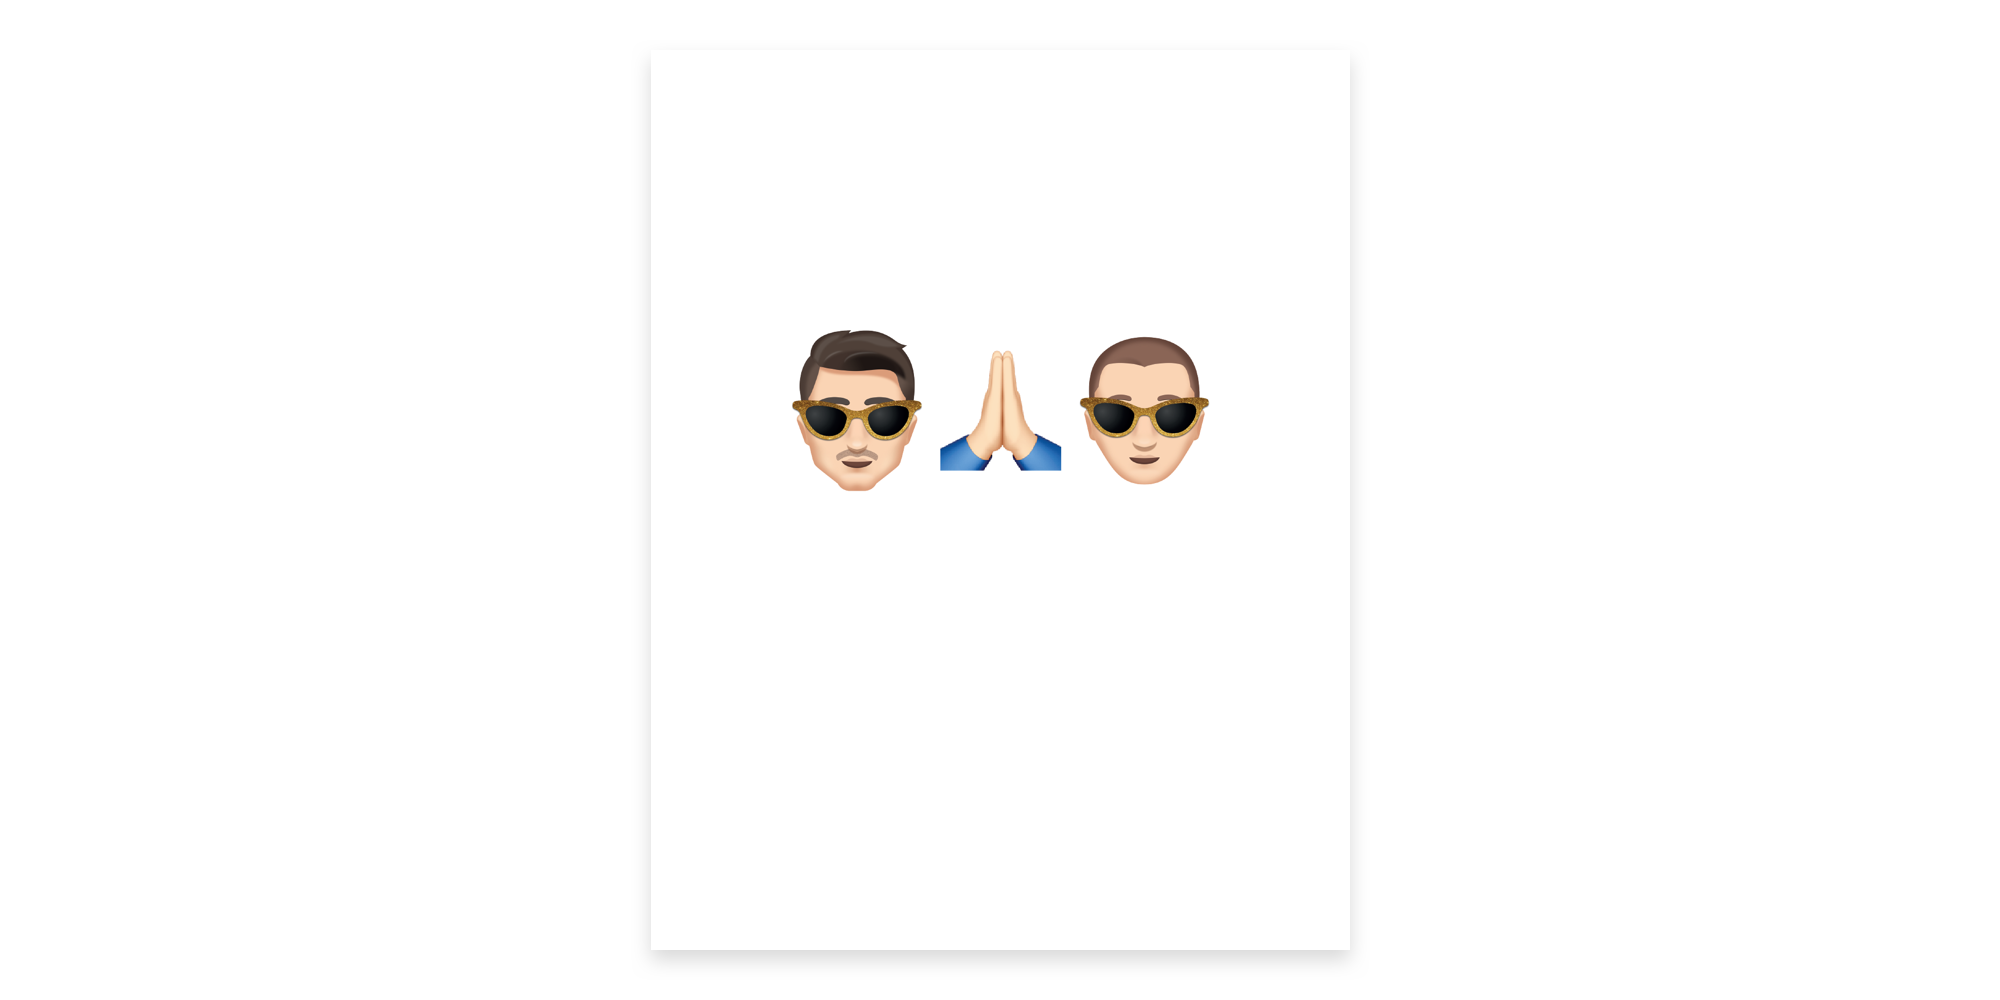 Our thank you cards were minimal, showing our signature emoji with praying hands in the middle.